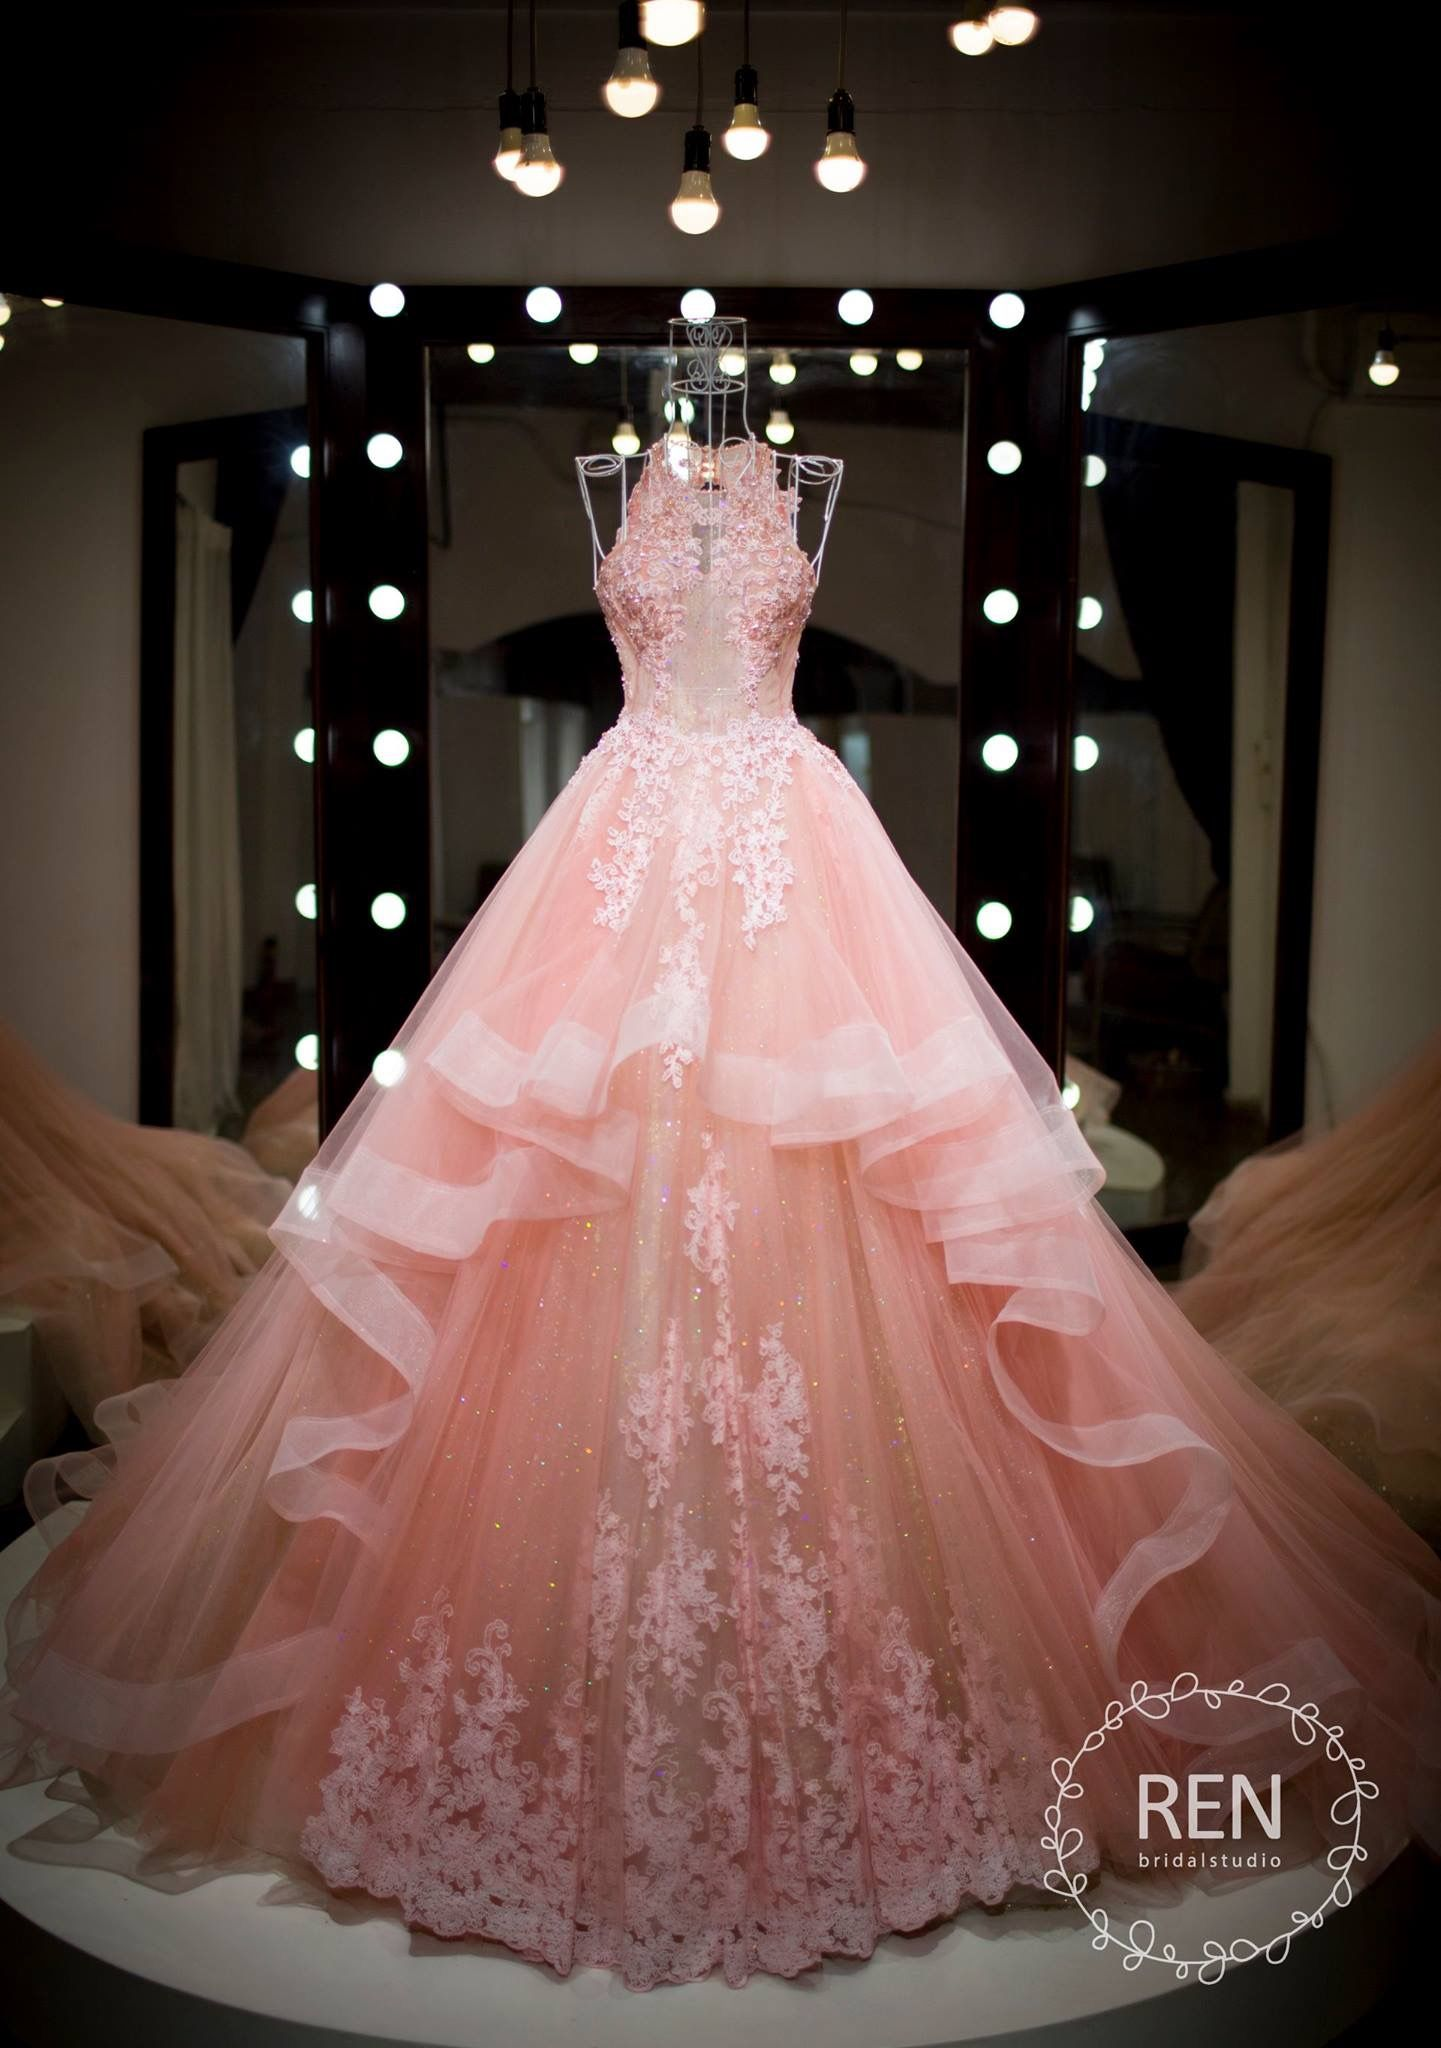 blush wedding dress ruffle skirt with lace applique